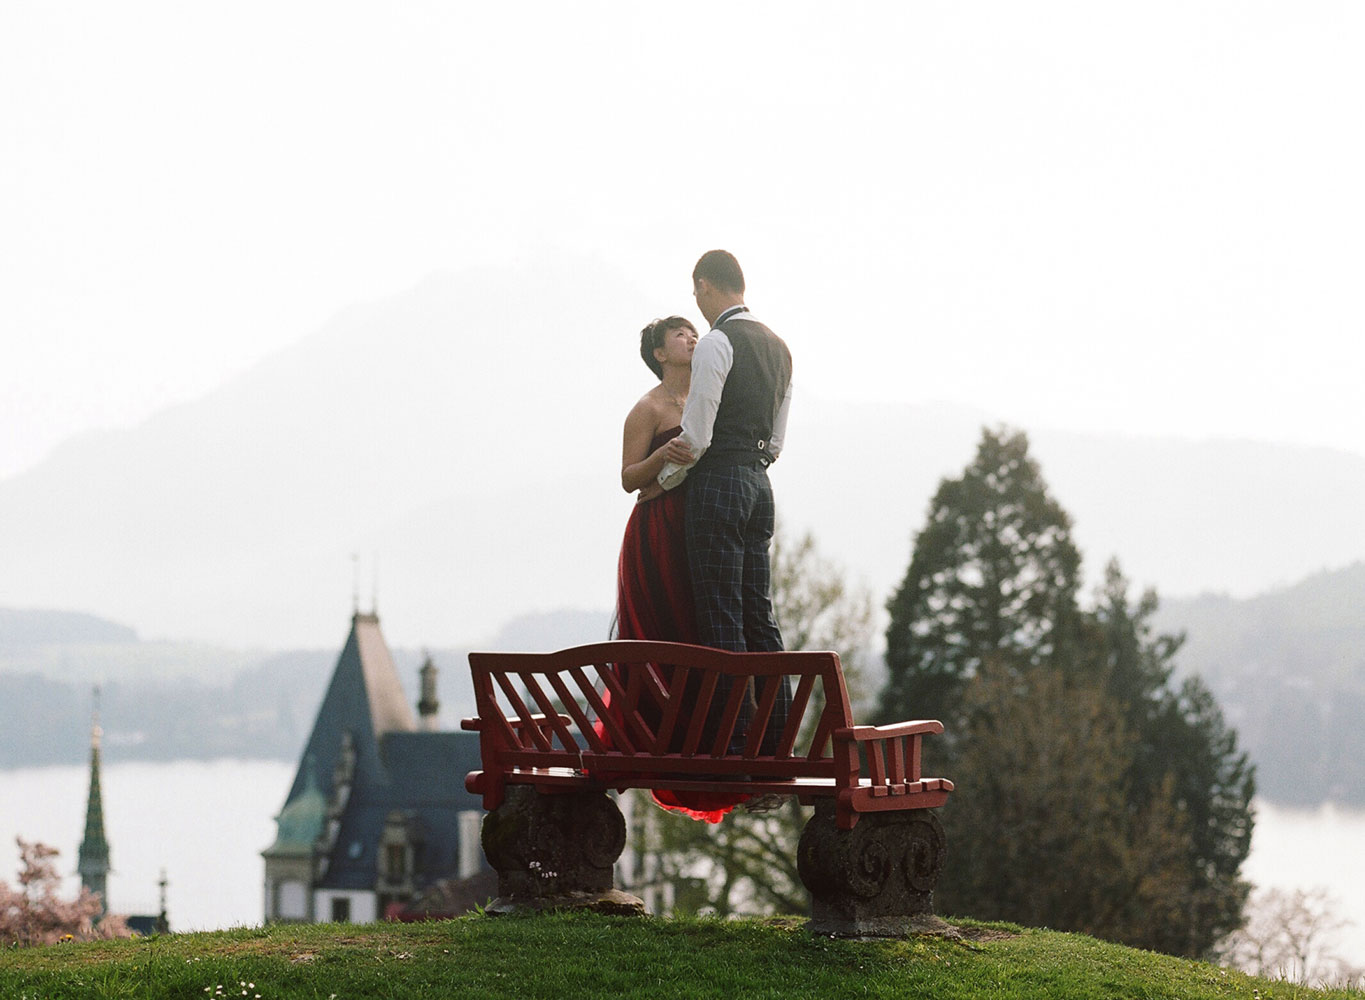 Minnie-William-prewedding-pictures-Interlaken-Luzern-10.jpg